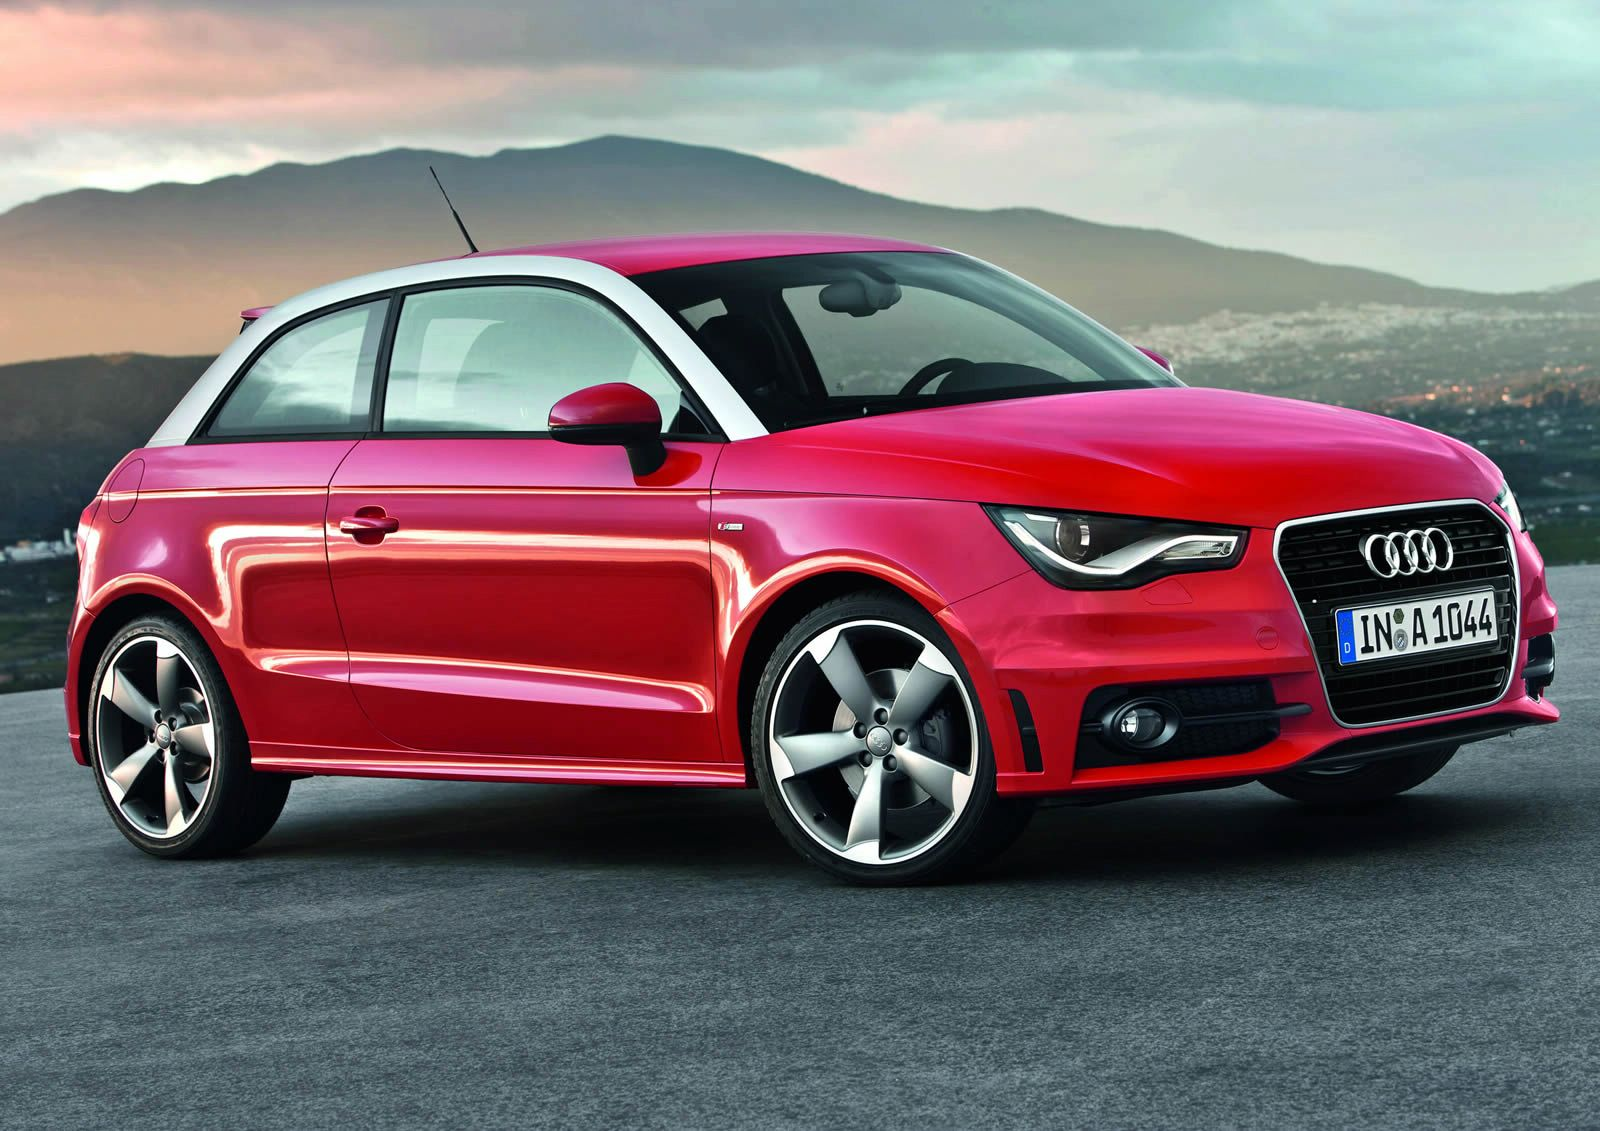 2011 Audi S1 Will Make Its Official Debut At The Paris